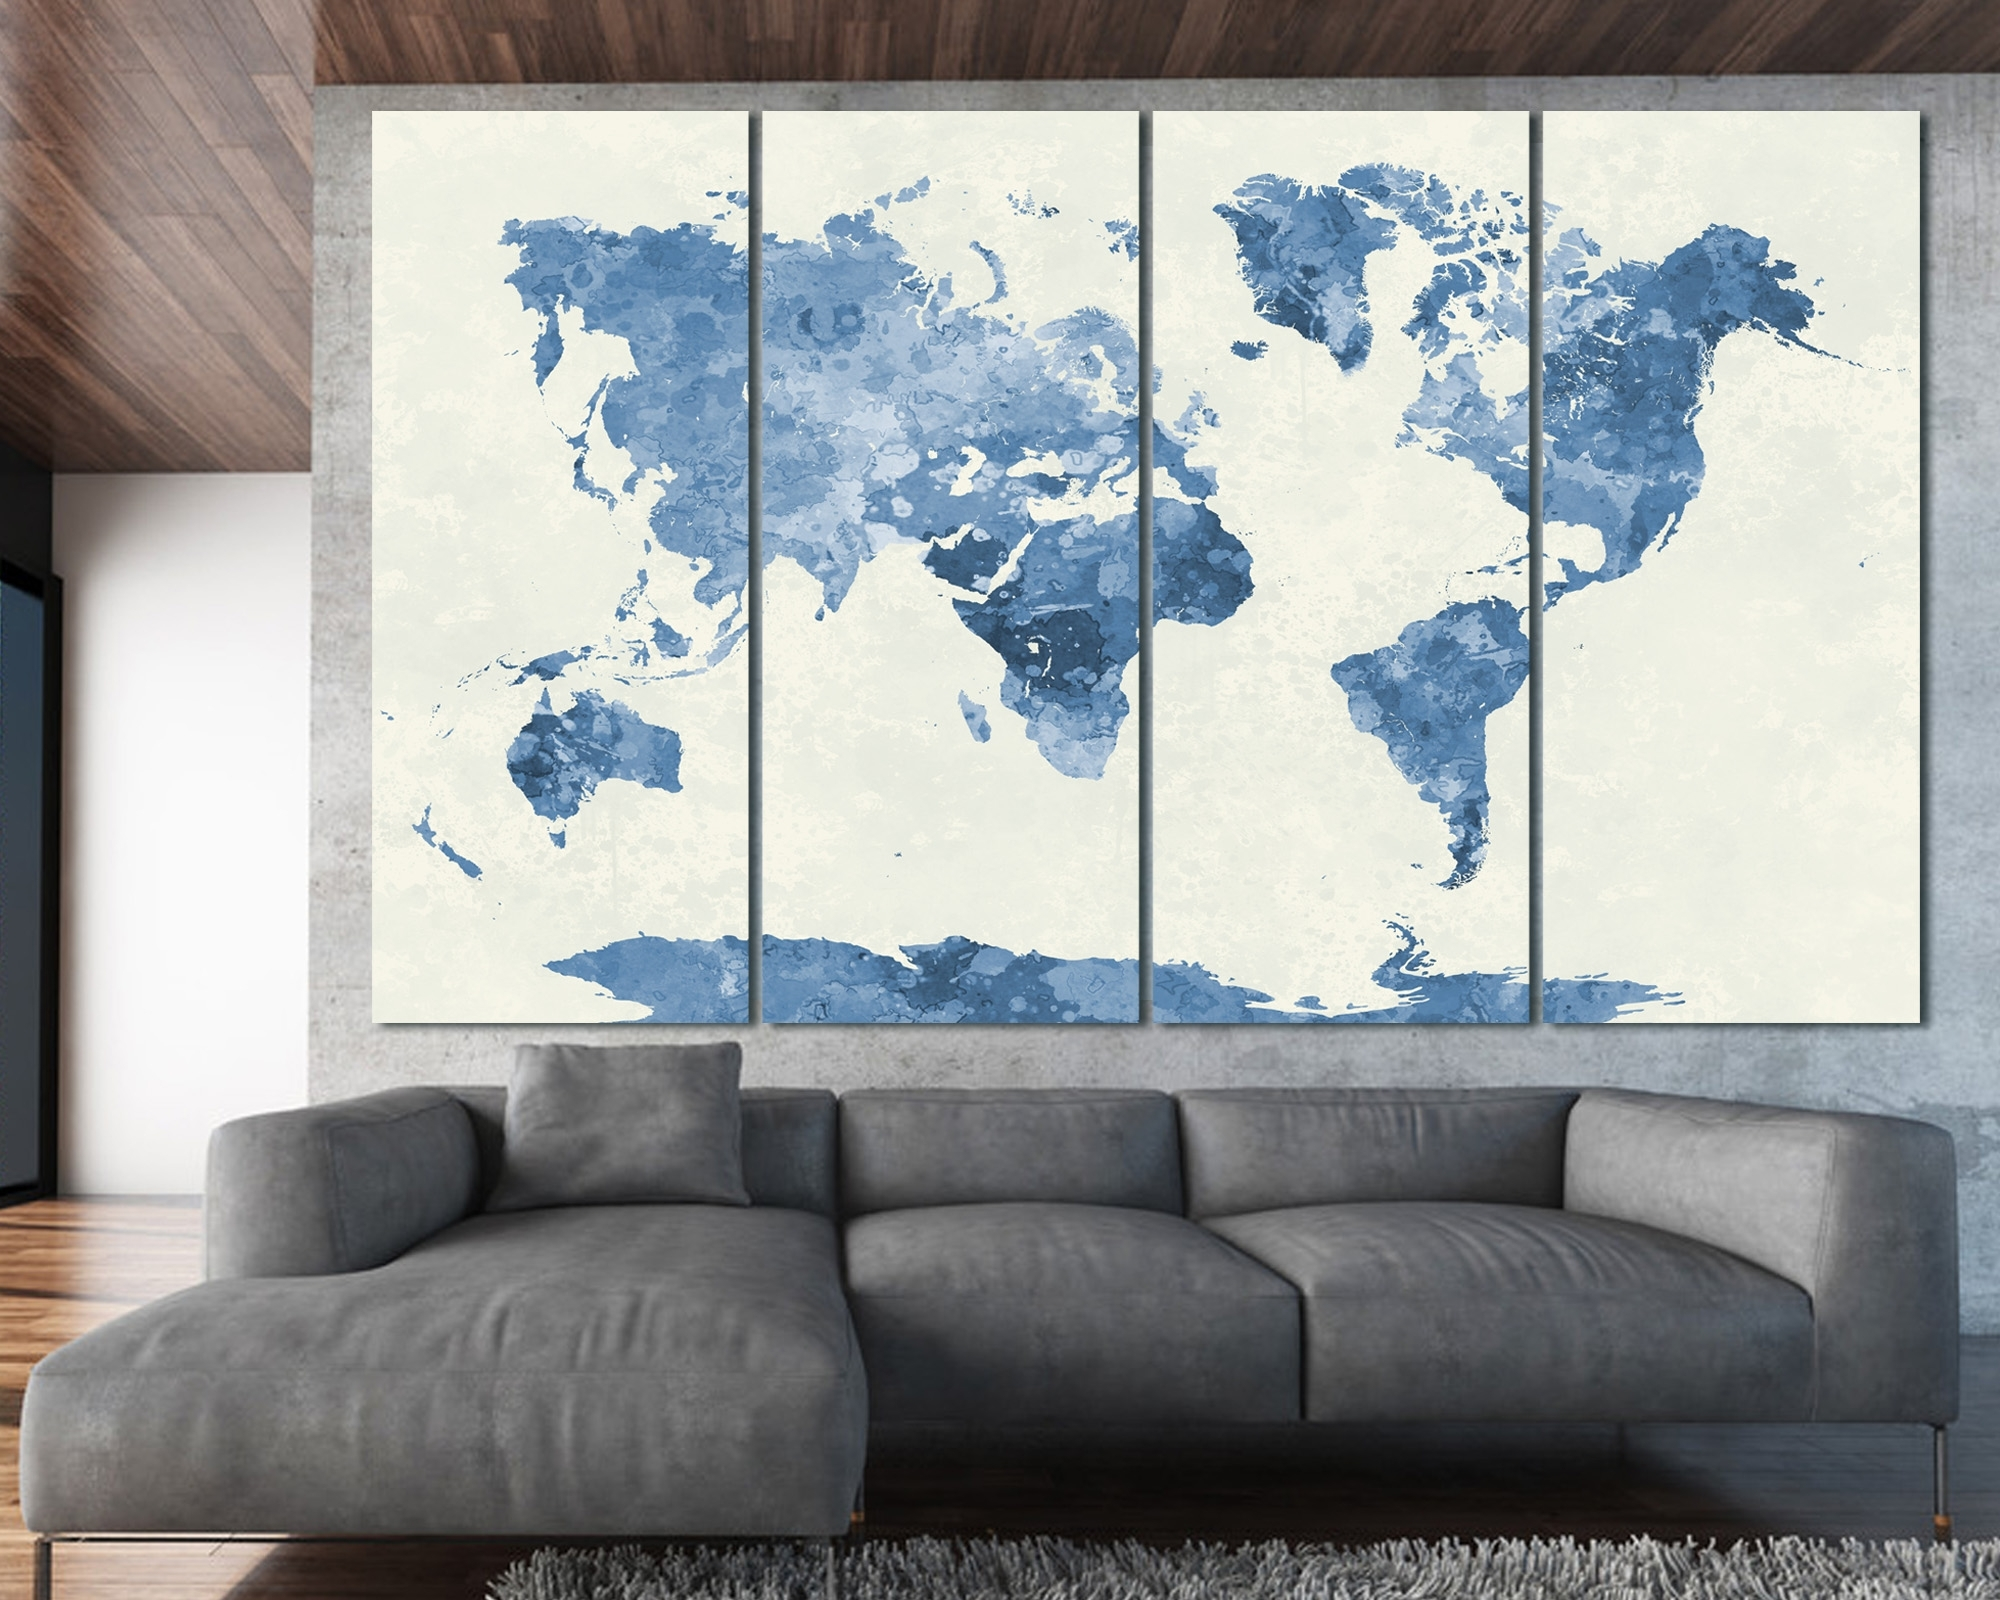 Navy Blue Watercolor World Map Print At Texelprintart Within Most Current Navy Blue Wall Art (Gallery 8 of 15)